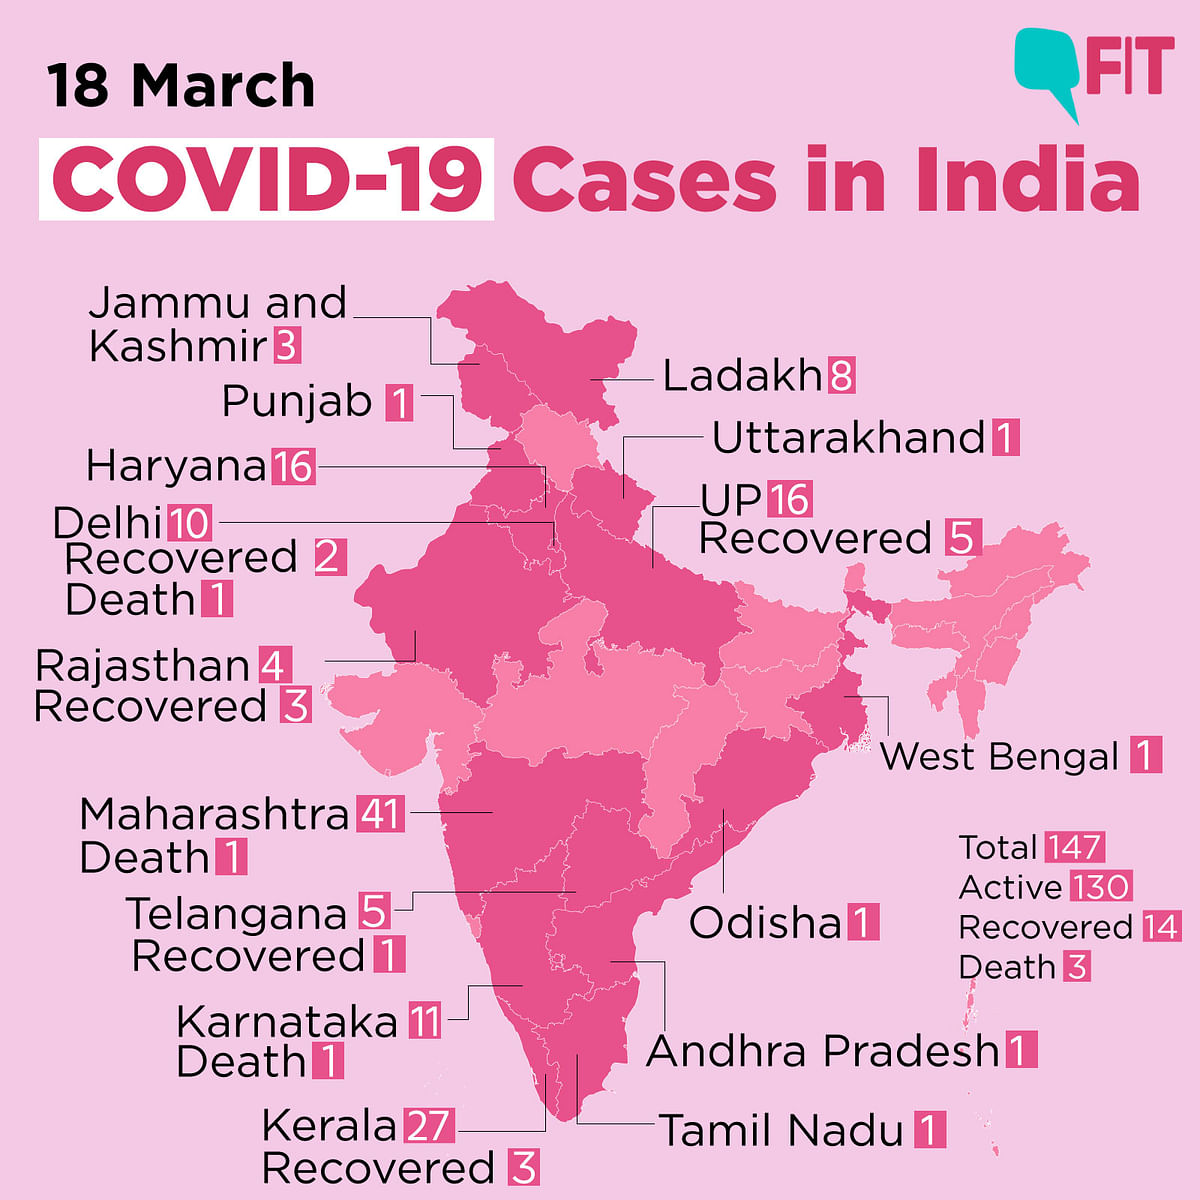 COVID-19 India Updates: 147 Total Cases in India, 14 Recovered